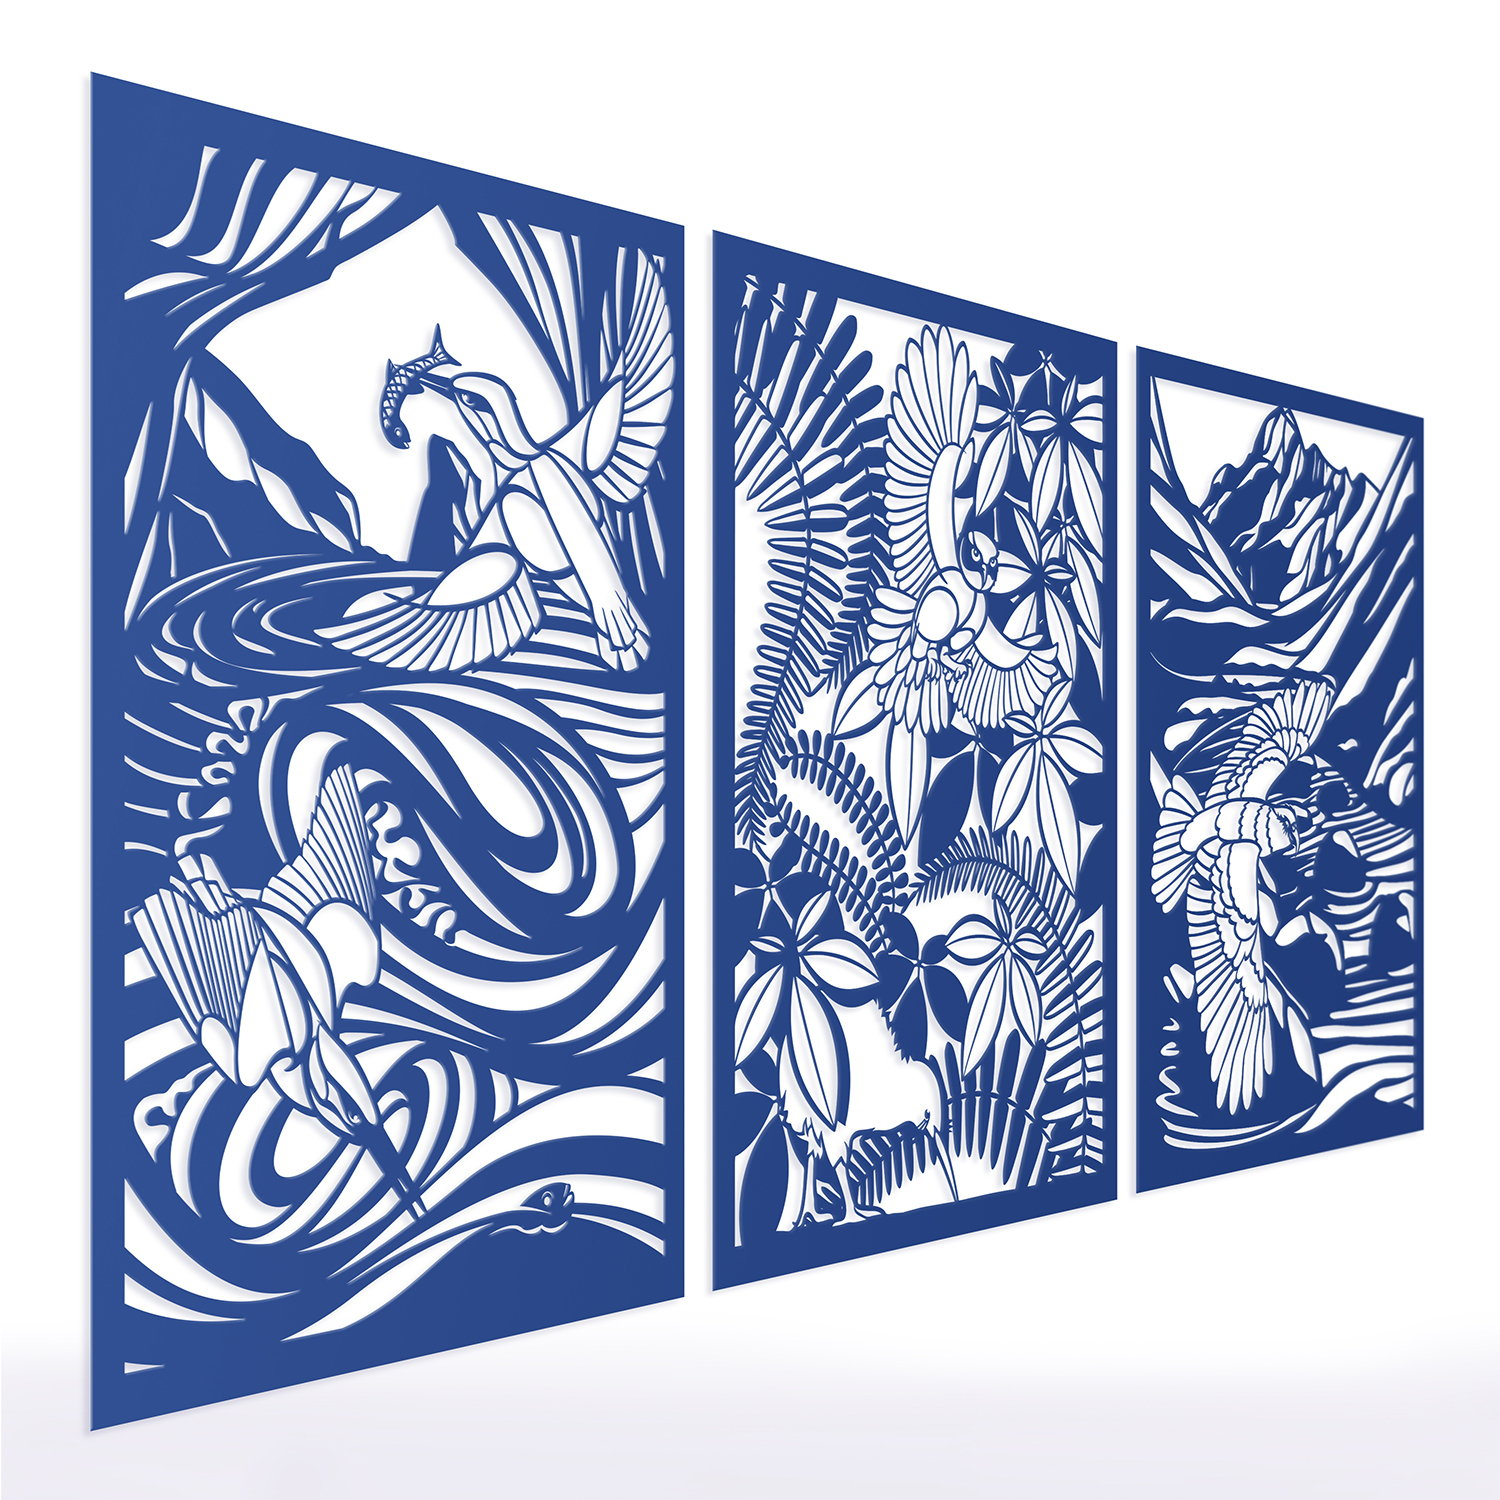 Birds of Steel Multifunctional Panel by Malcolm White